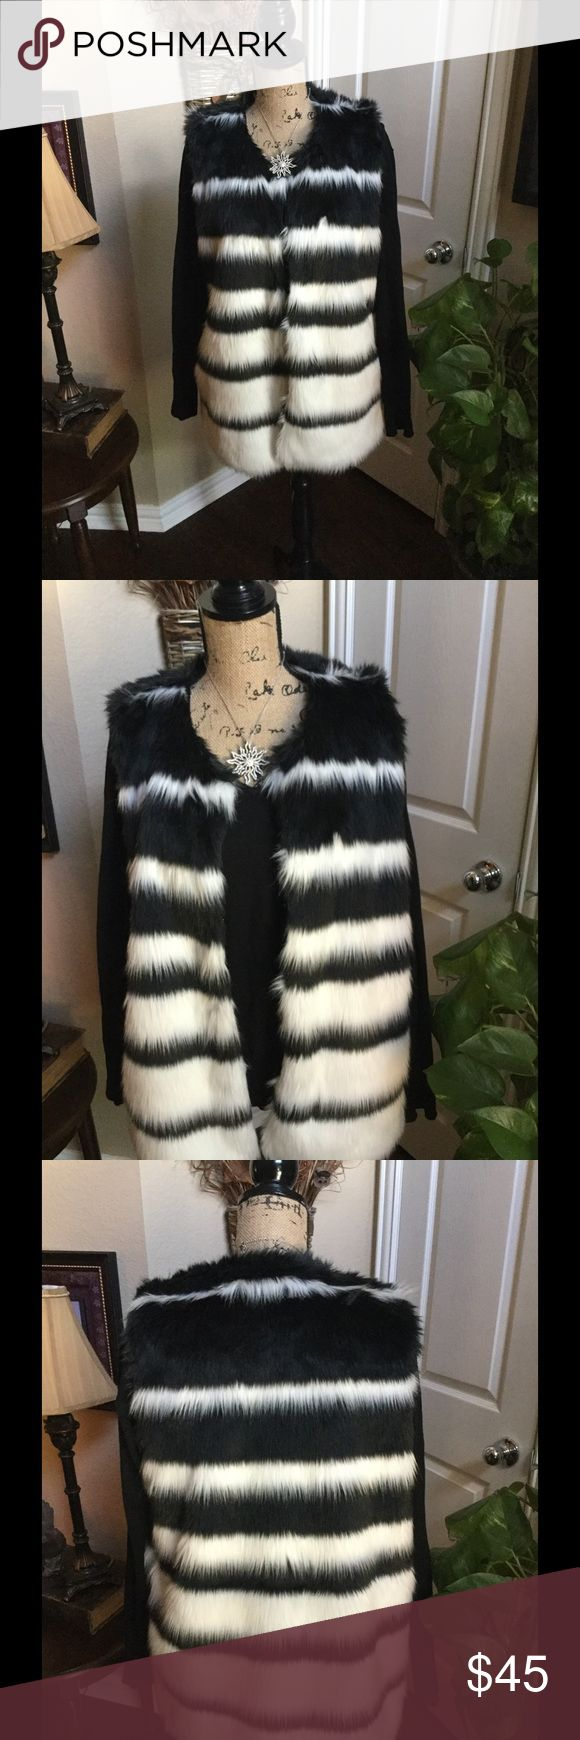 AWESOME Fur Black & WHITE VEST This fun Feaux fur vest is a must for this Fall and Winter. Pictures do not do it justice. It is a black and white striped gorgeous color and will look awesome with a pair of black slacks for a holiday party or just a pair of jeans with a turtleneck for the weekend. Vest and lining is 100% polyester. It has two snap closures in the front. You will be glad you purchased this one. It is a medium but a large could where it very easily as you would wear it opened…